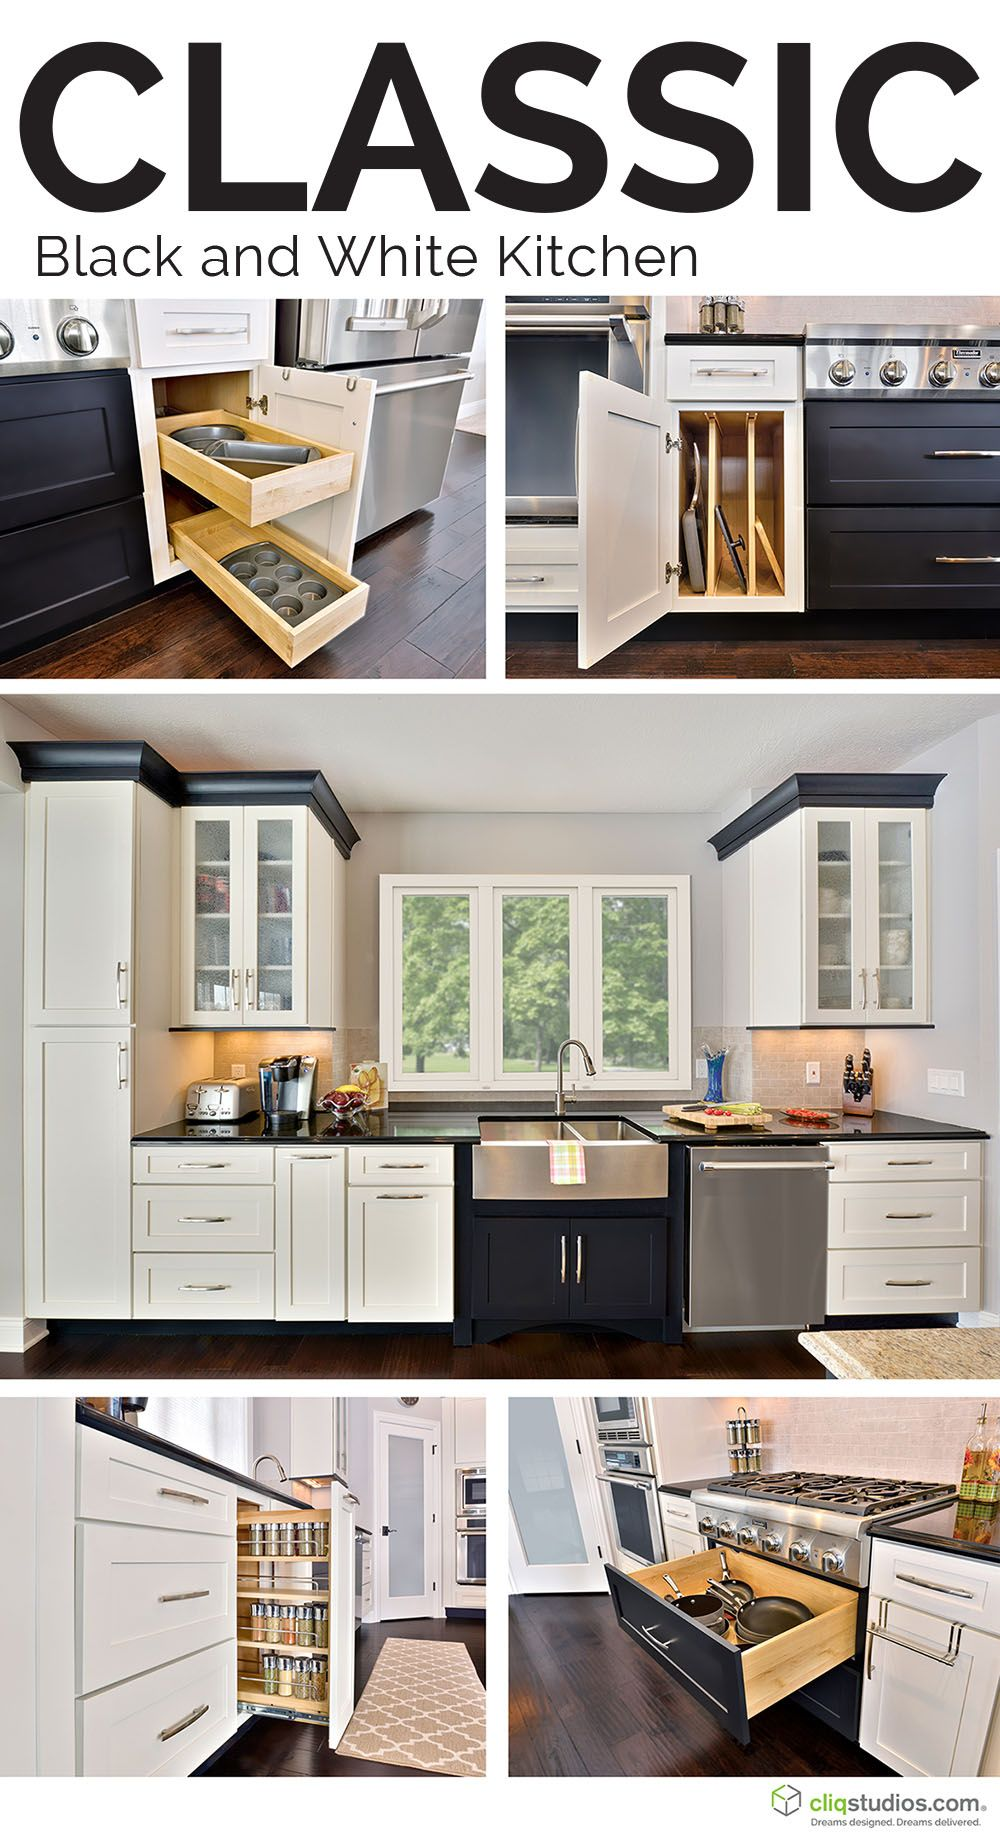 Dramatic Black And White Kitchen Featuring Dayton Painted White And Painted Carbon Cabinetry And Kitchen Storage Solut New Homes Tiny House Plans Kitchen Style